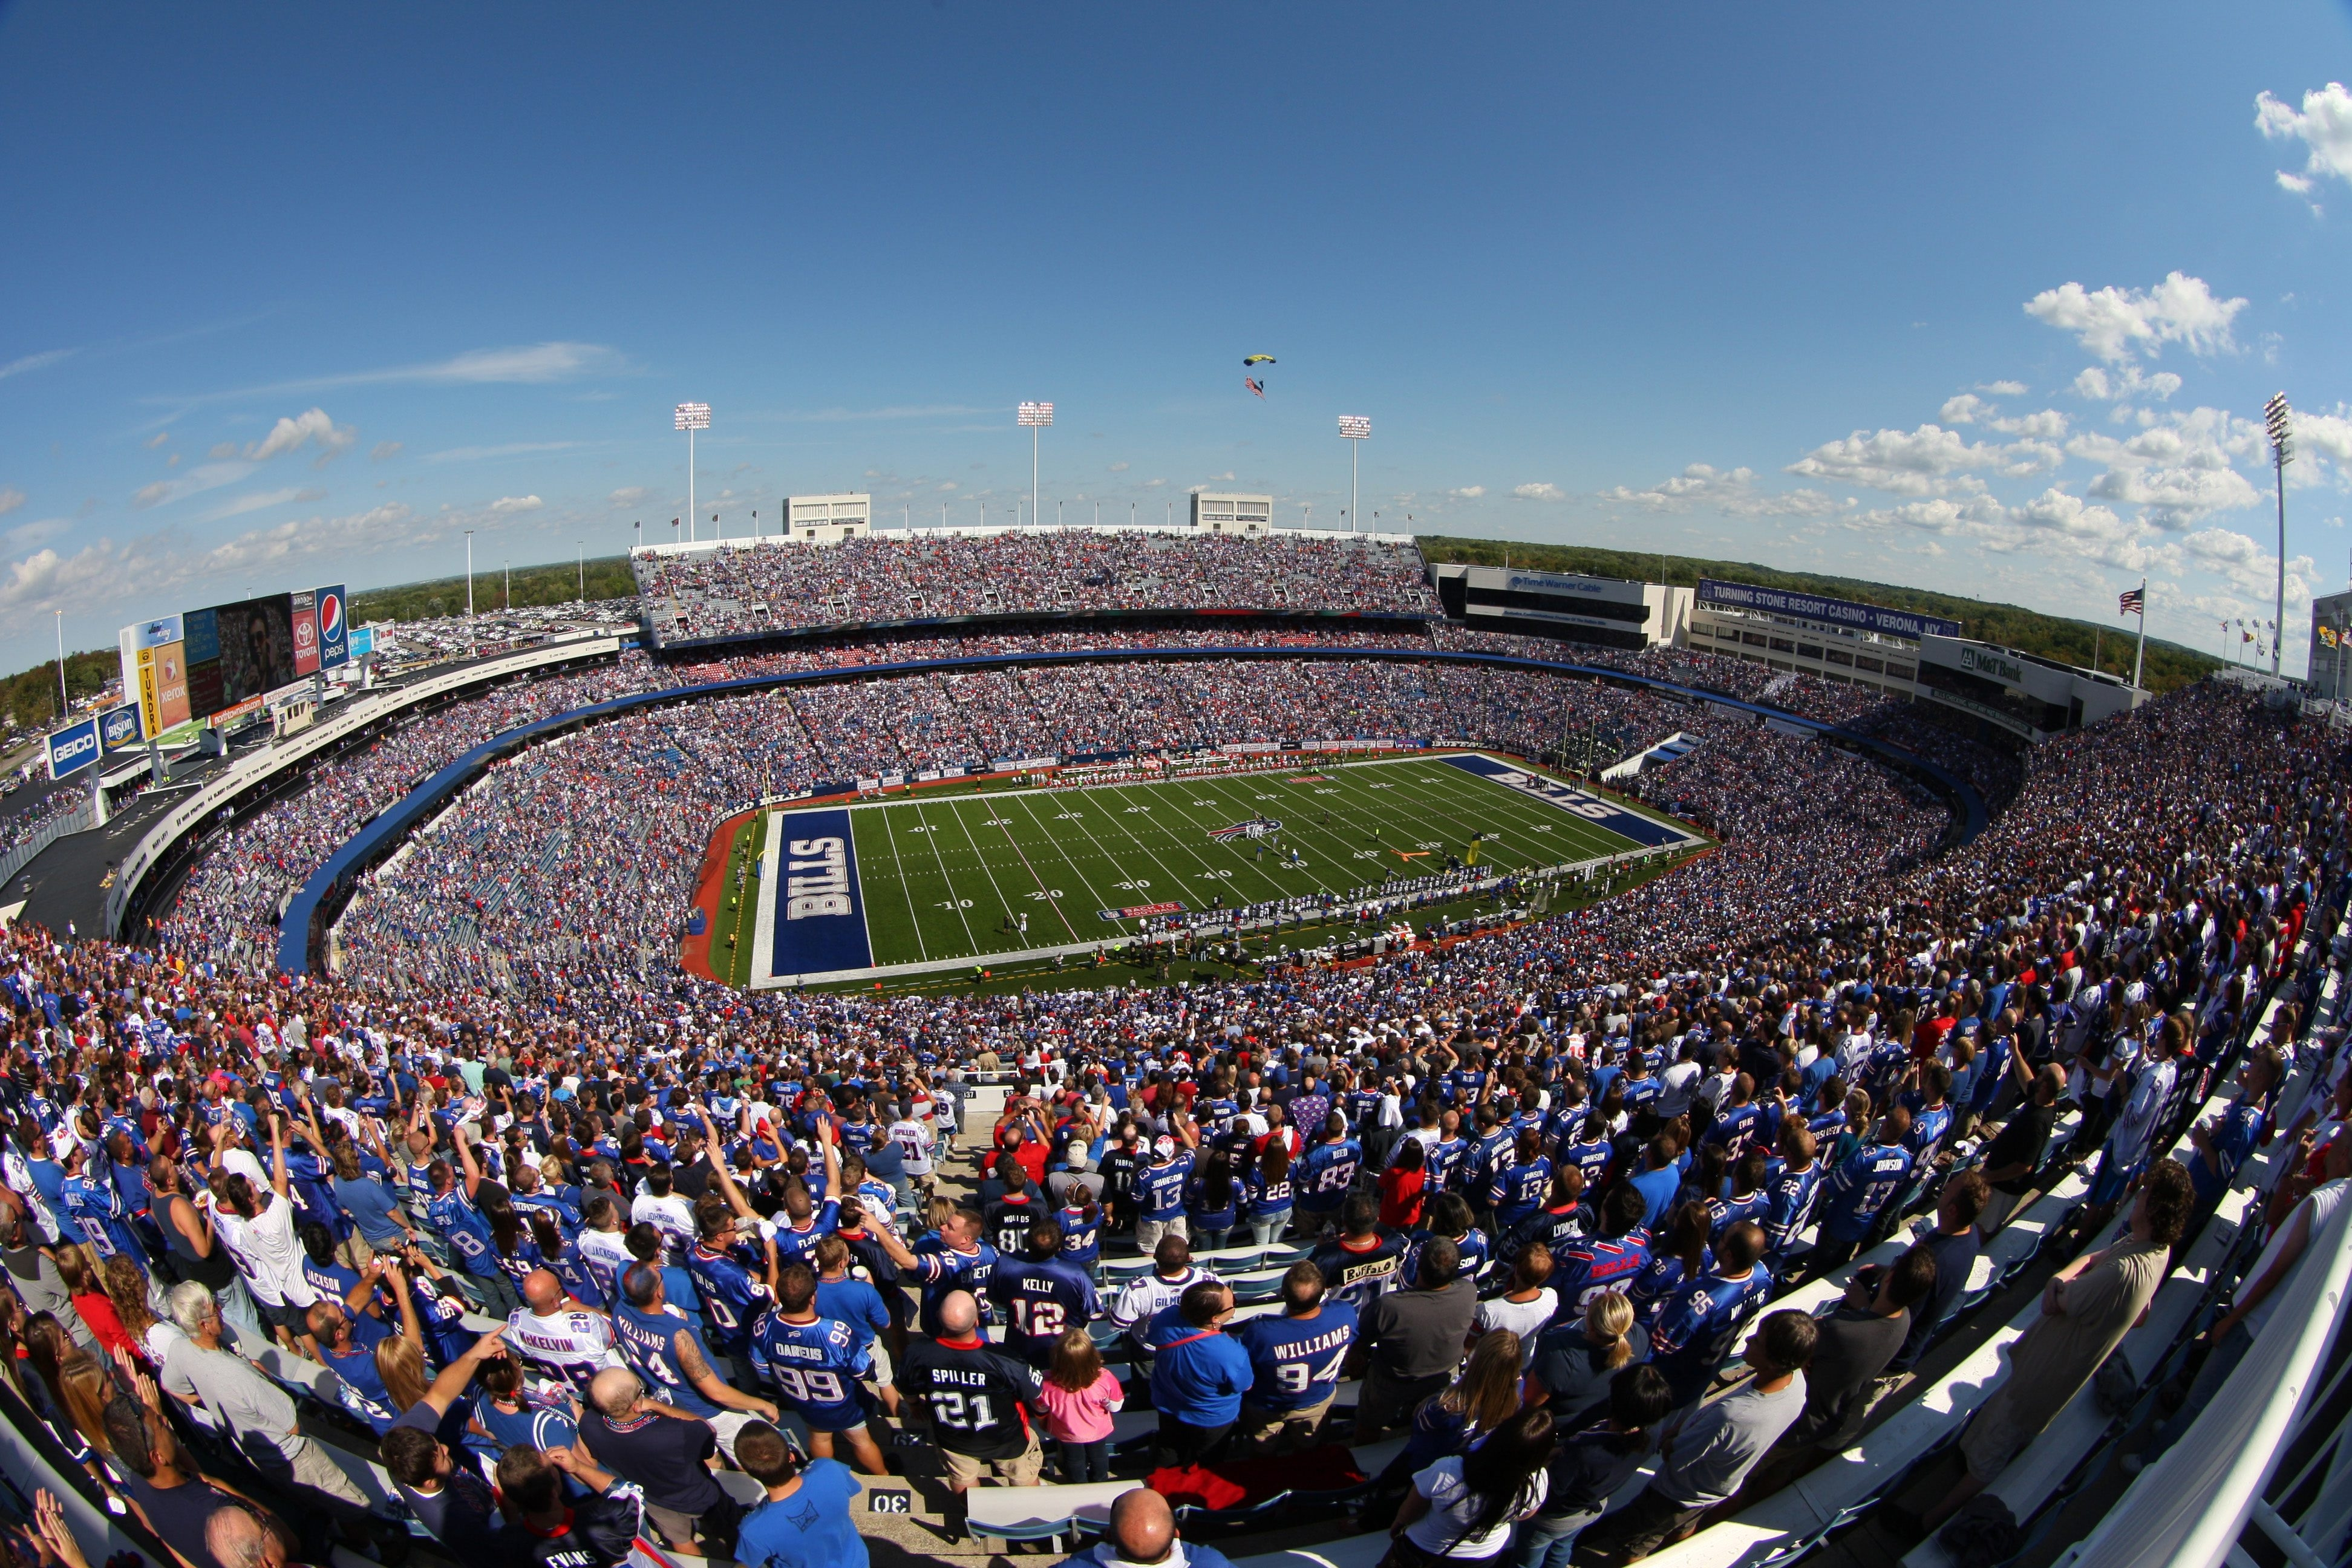 If the Bills field a high-quality team, fans will buy tickets even if home games are on television. (Buffalo news file photo)